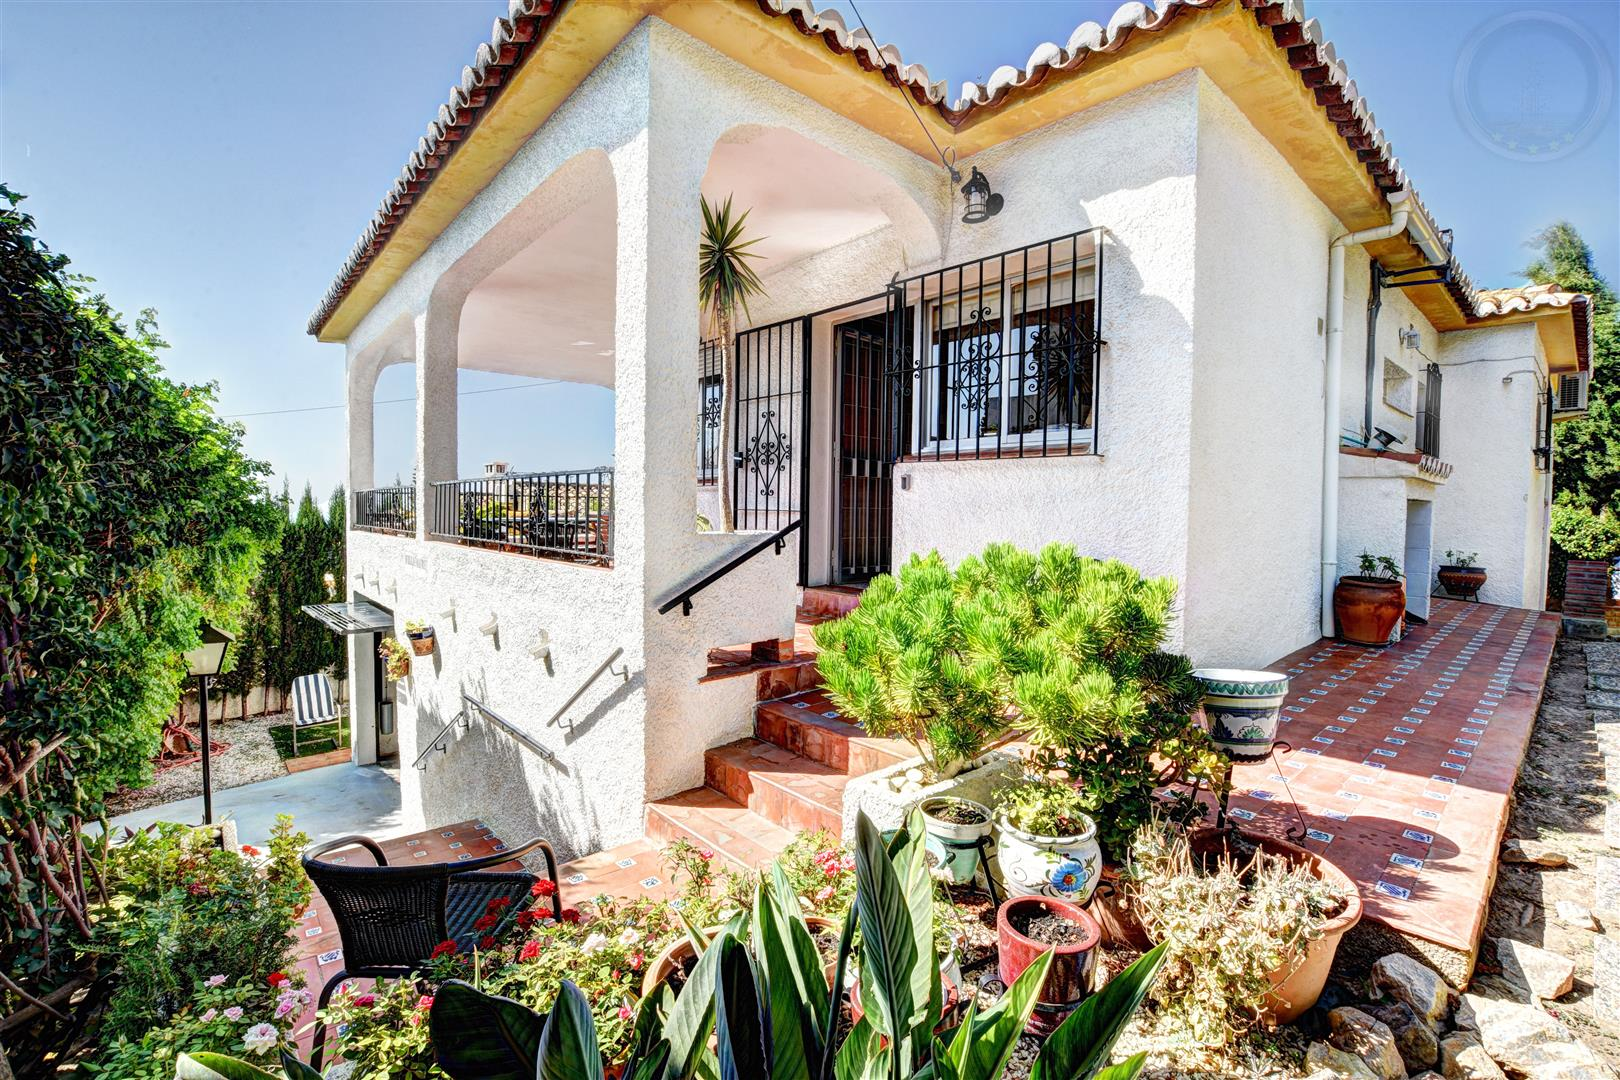 Villa for sale in Arroyo de la Miel 11